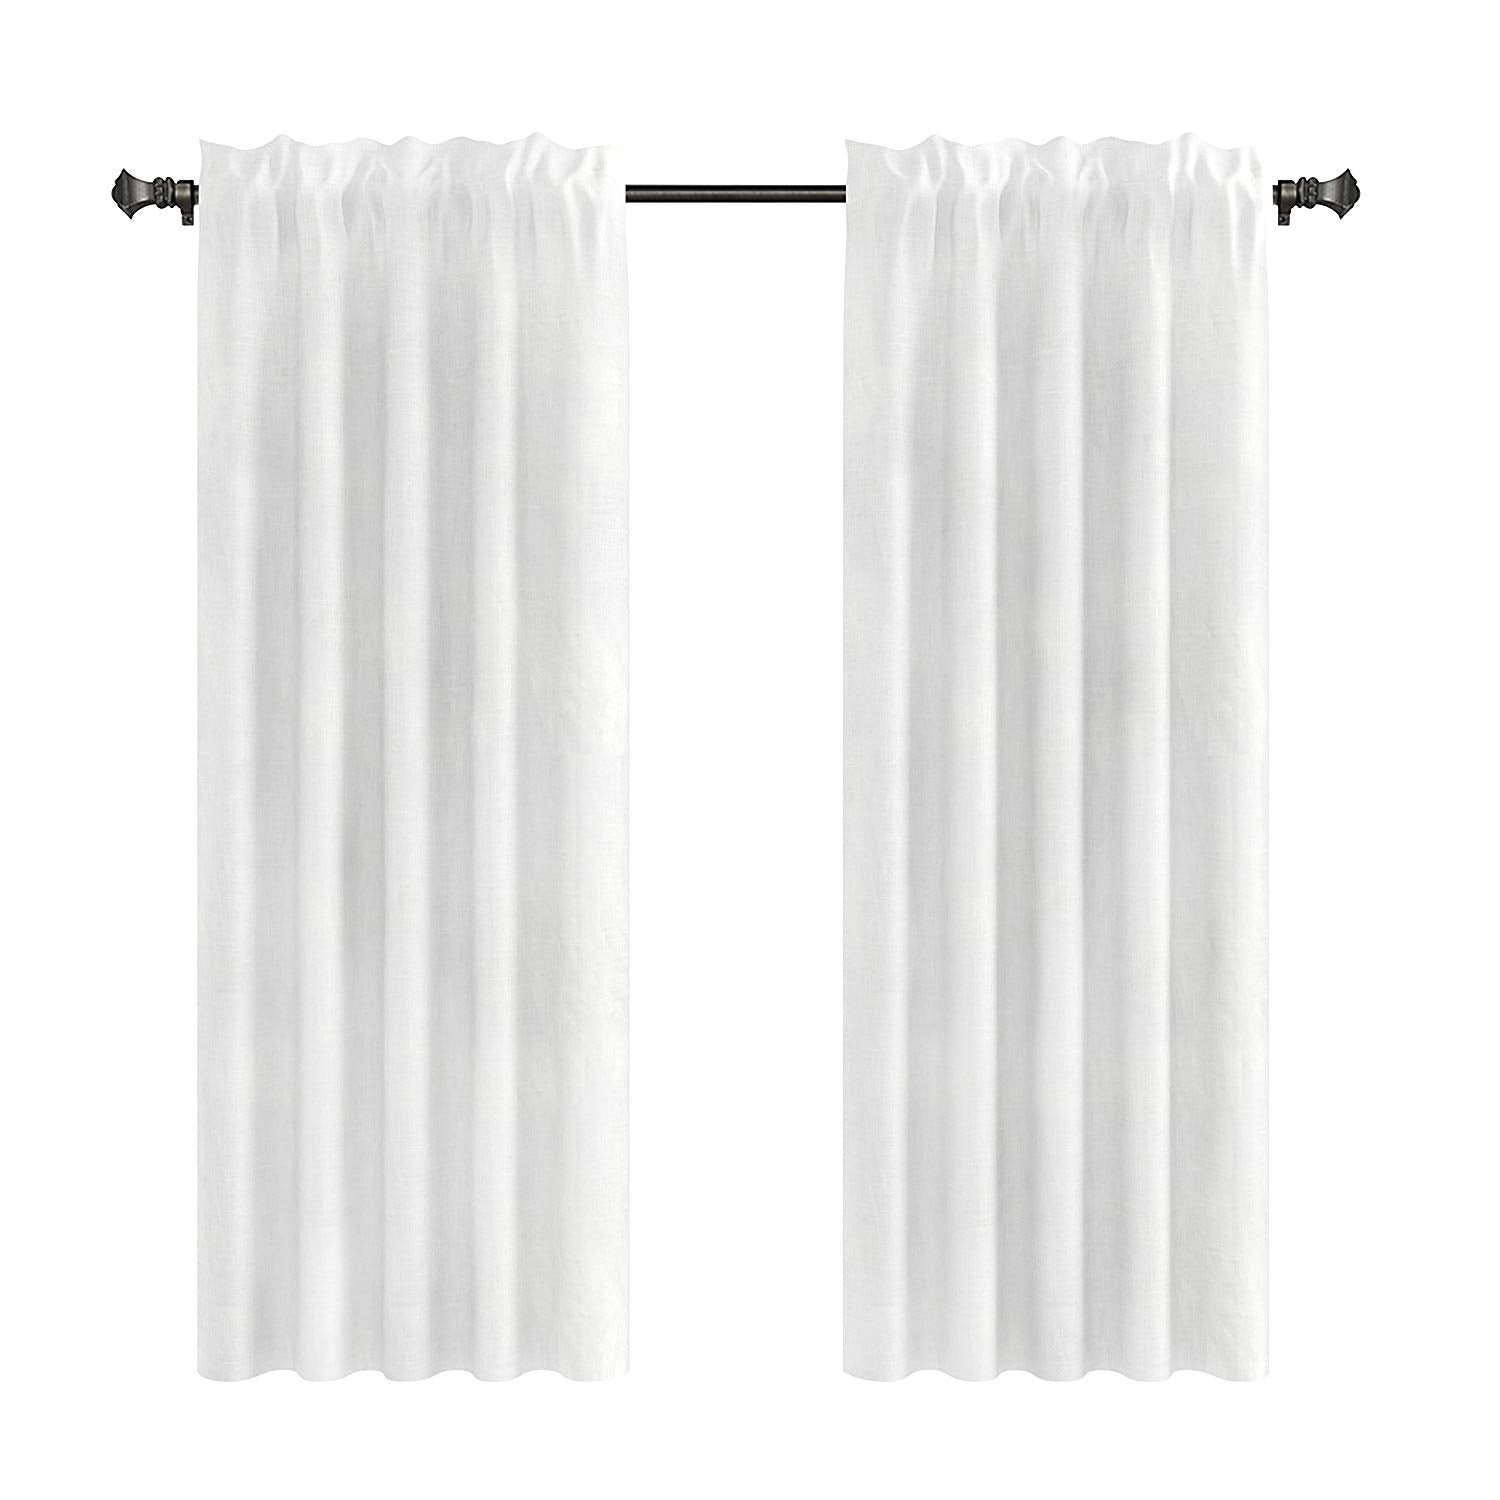 Pair of 2 Drapery Curtain Panels, Unlined, 100% Linen, 7 Colors, 3 Sizes